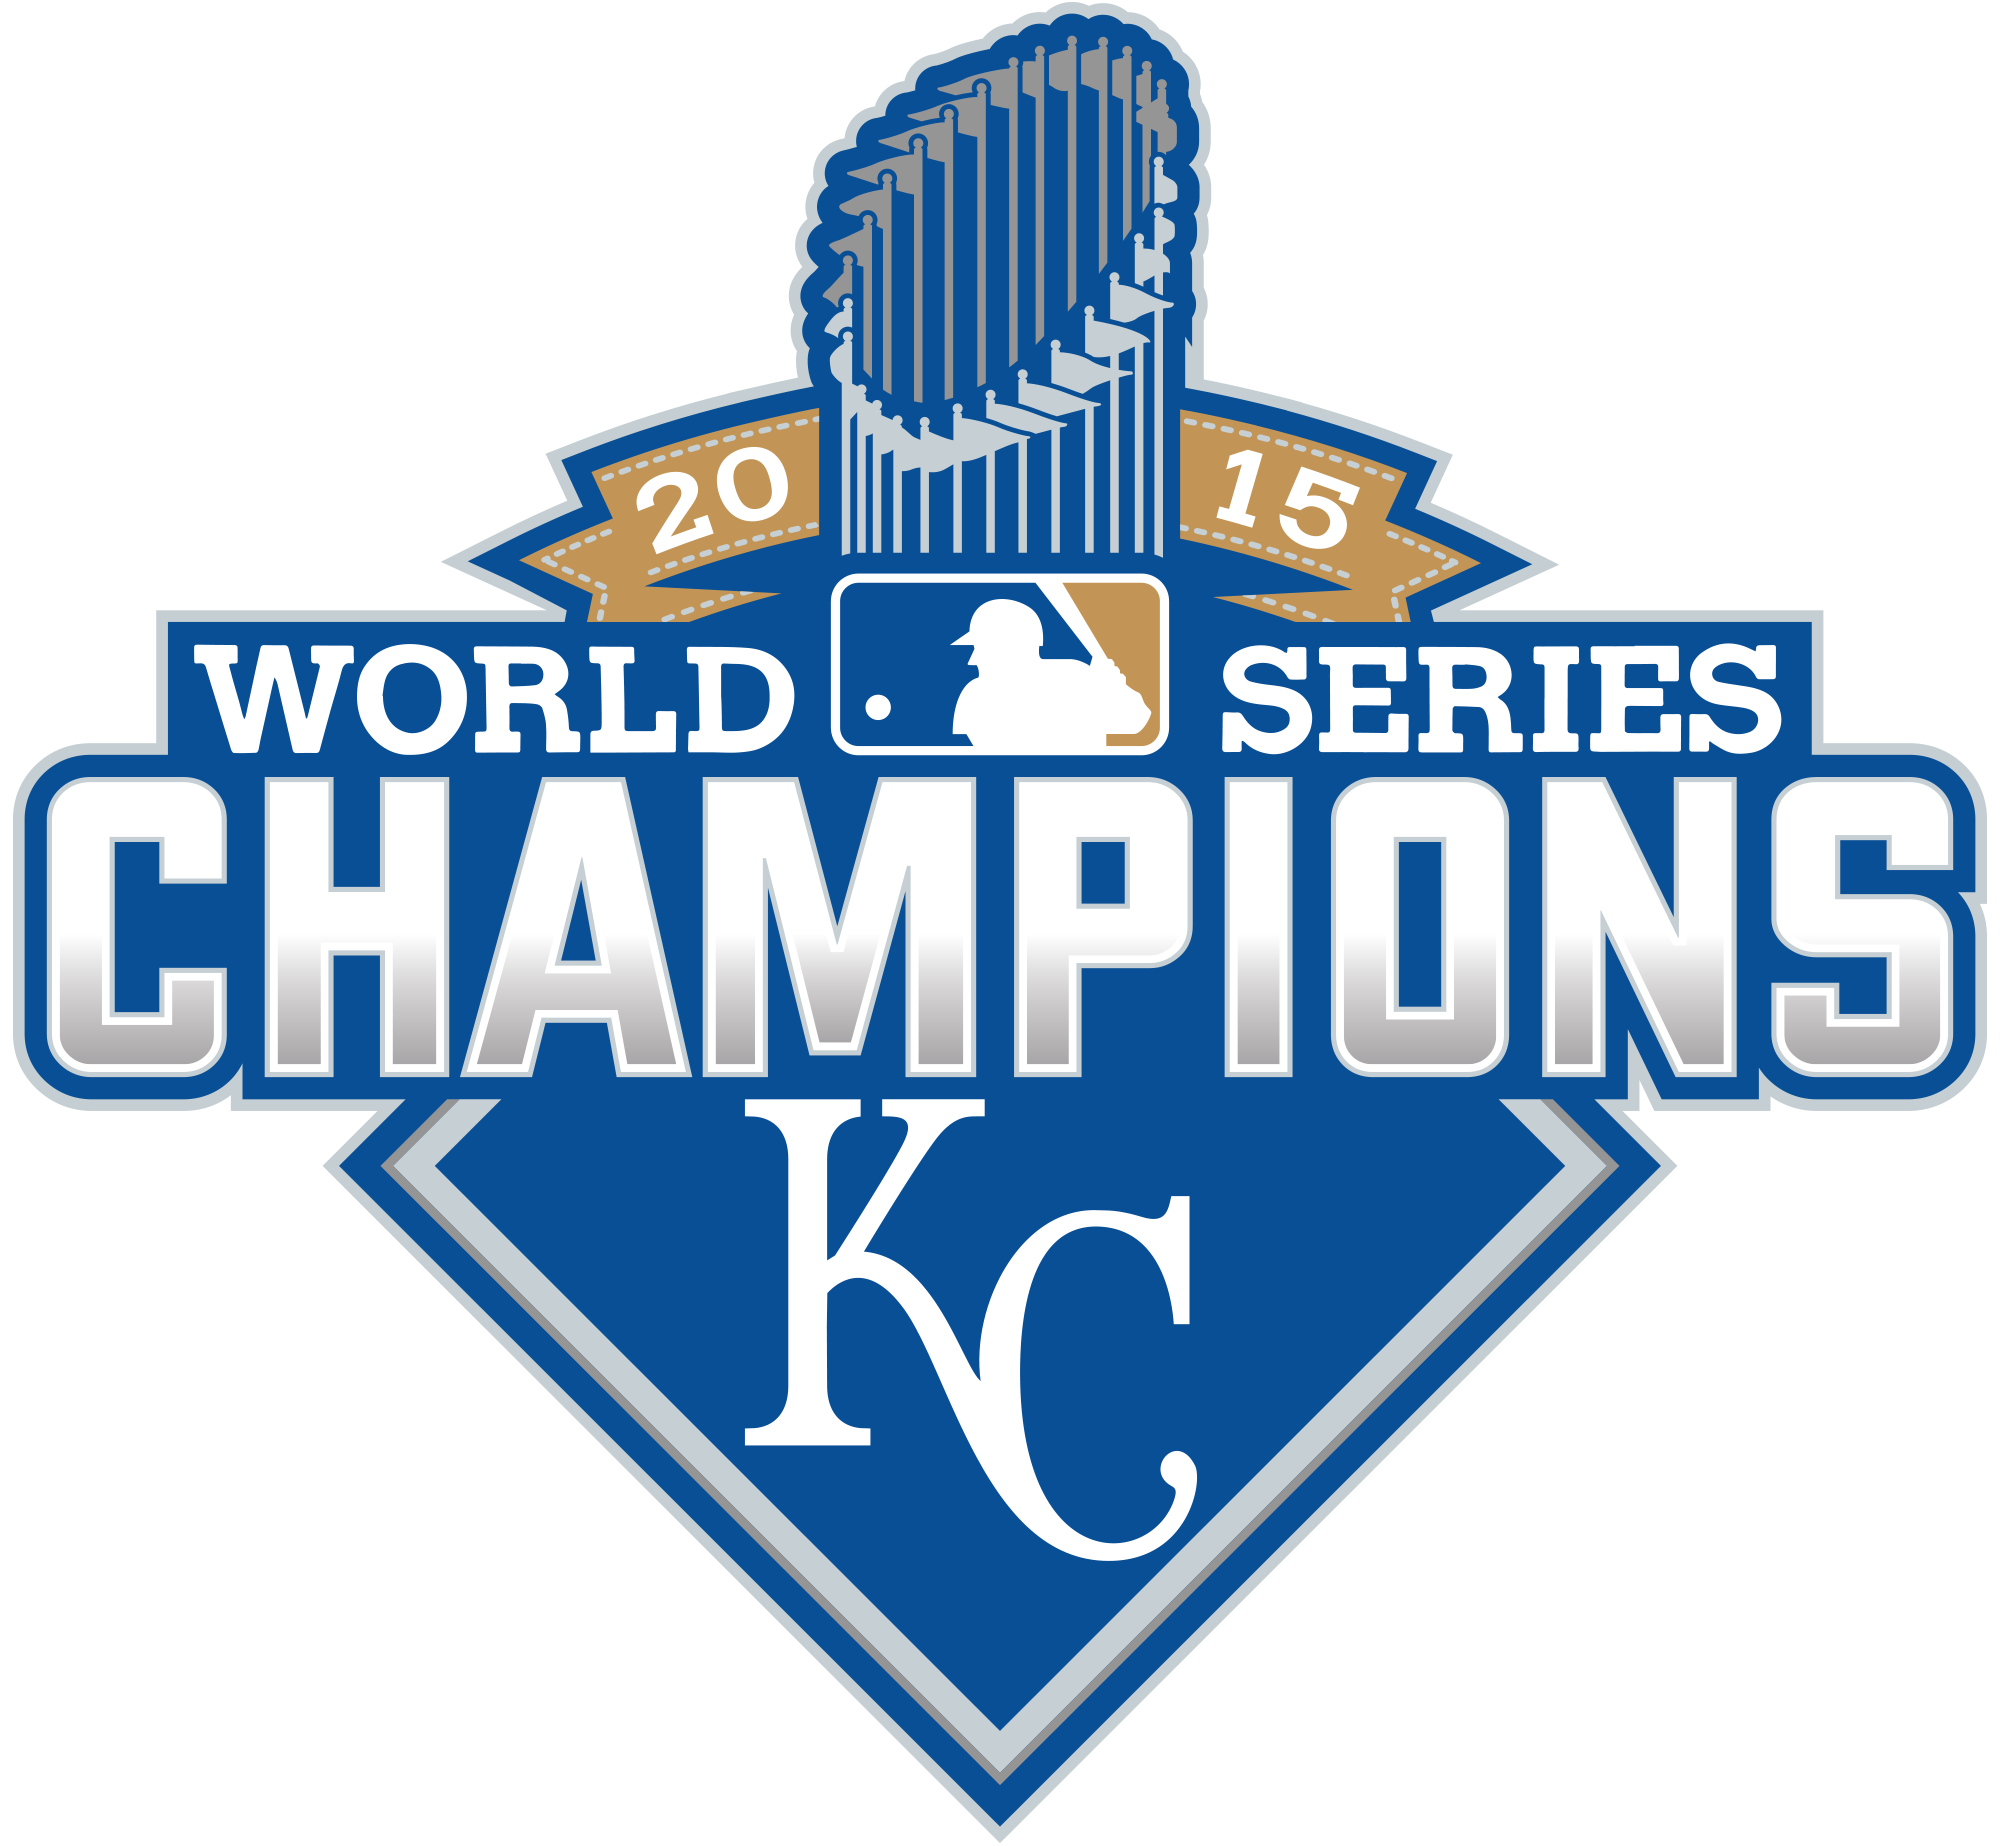 2000x1846 World Series Champs Logo Vector File Kcroyals